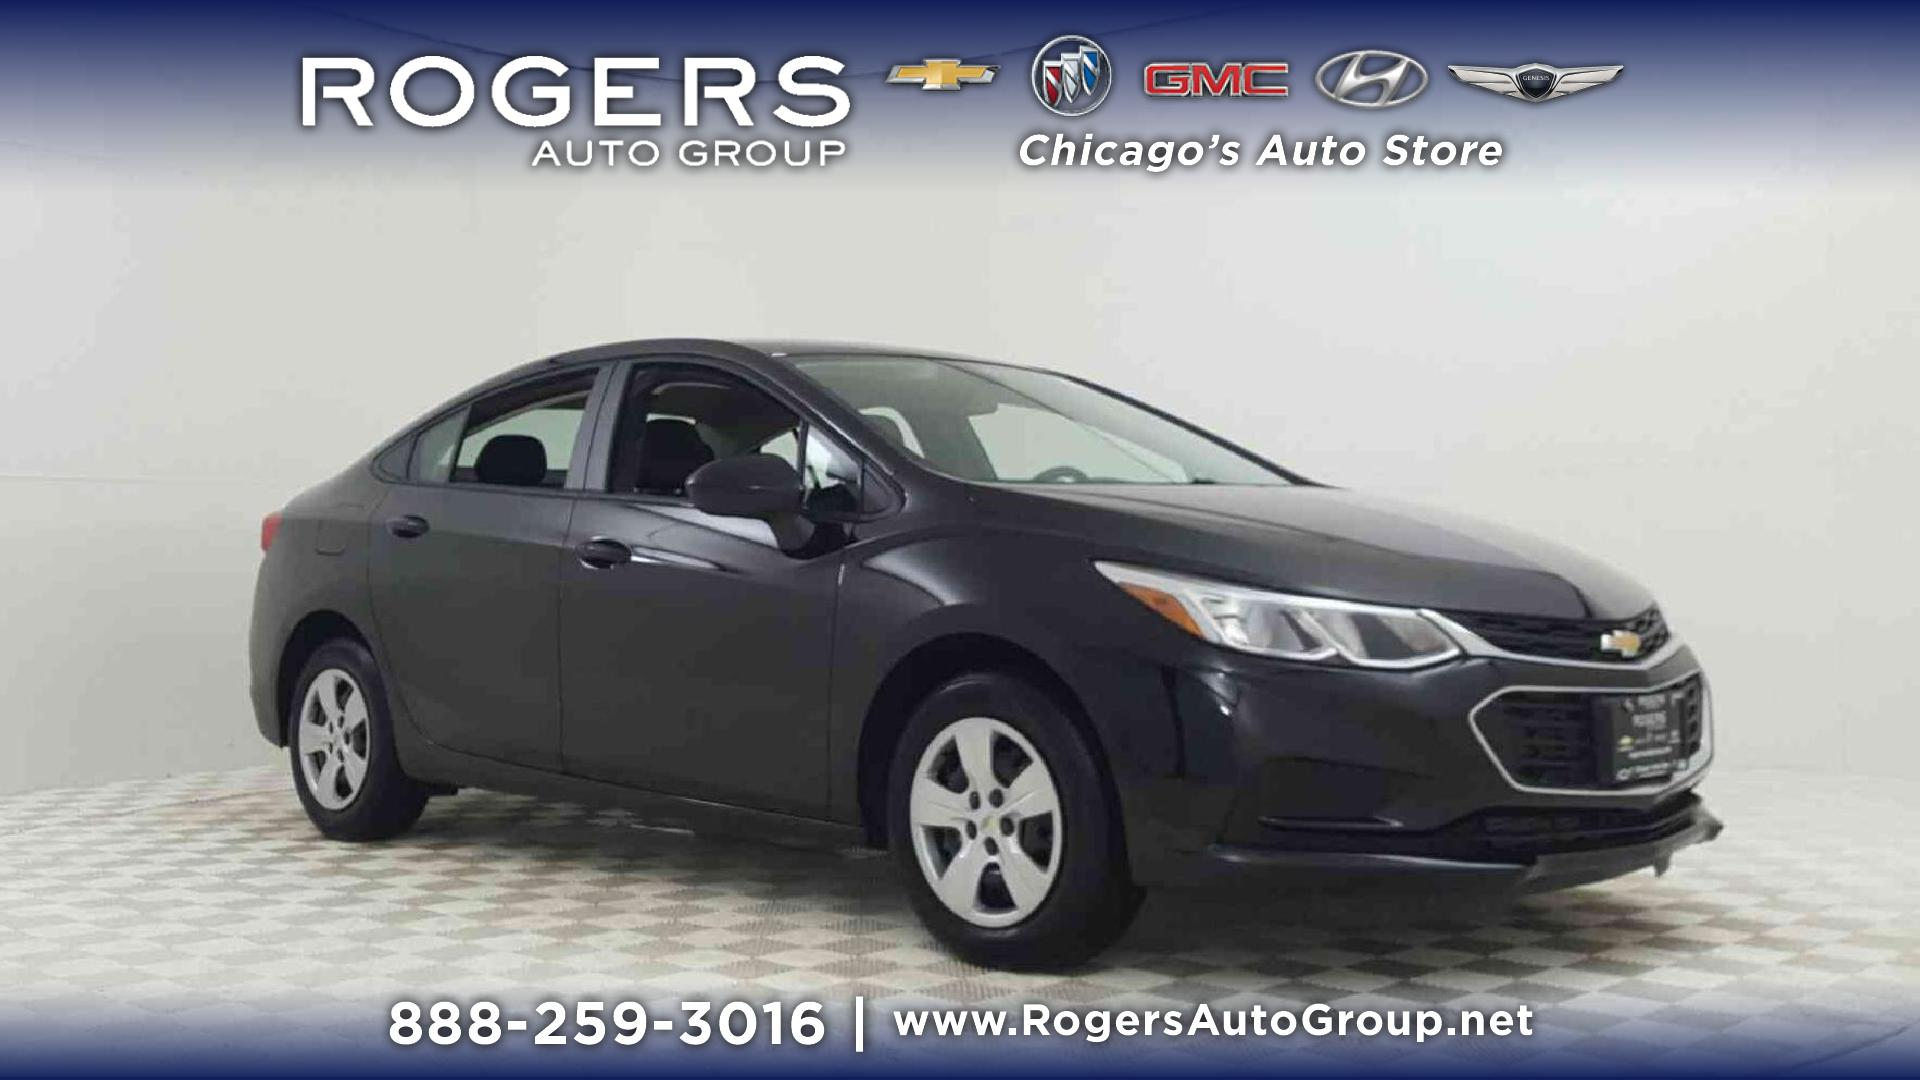 New 2018 Chevrolet Cruze 4dr Sdn 1 4L LS w 1SB 4dr Car in Chicago